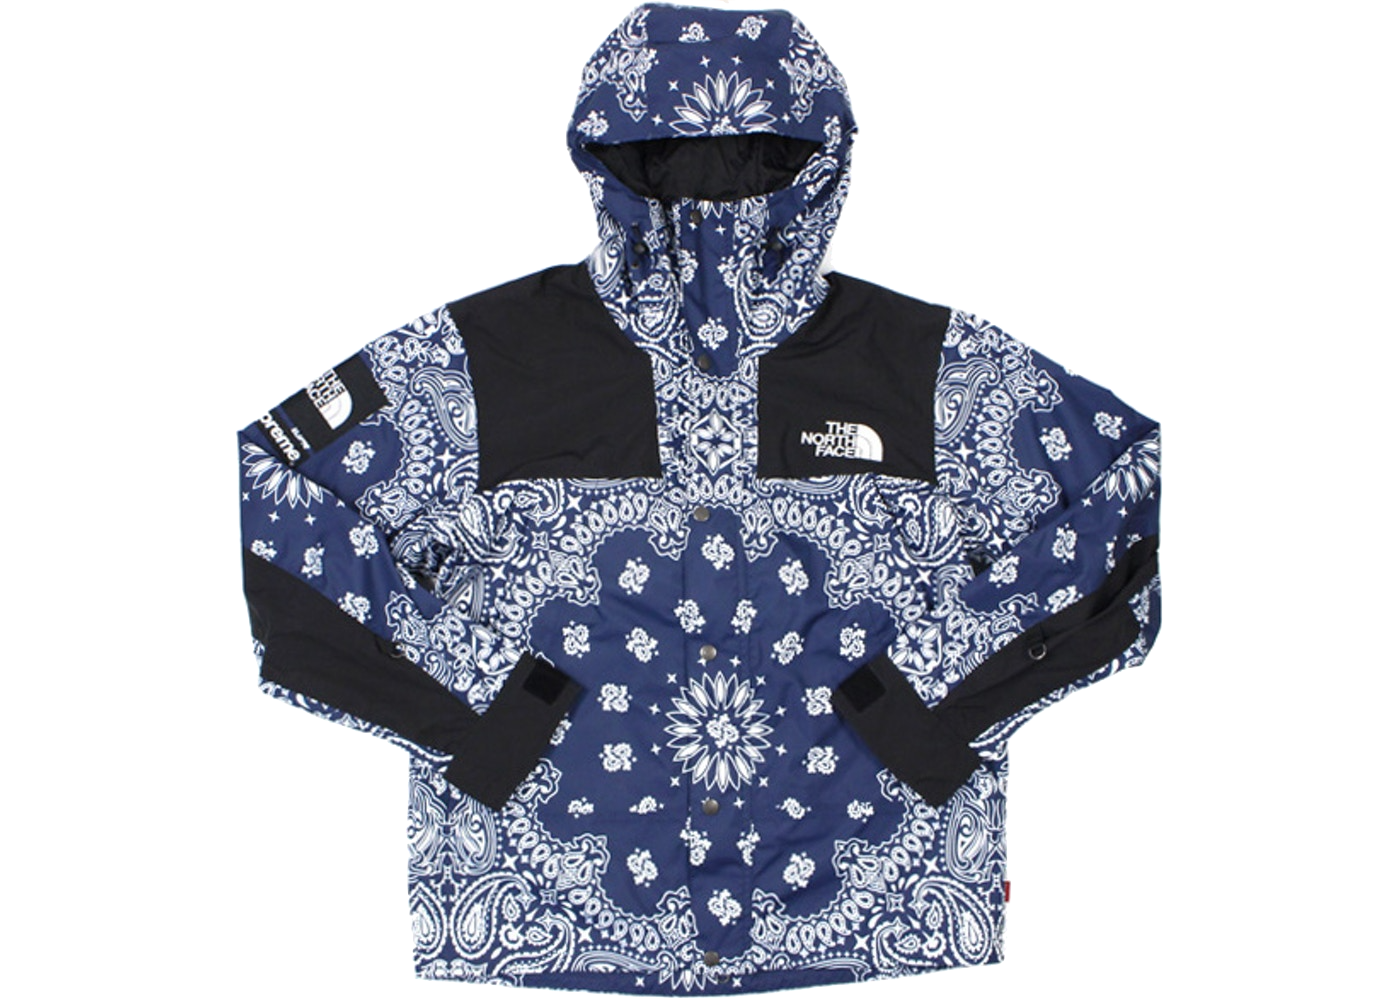 Supreme The North Face Bandana Mountain Jacket Navy - Baza